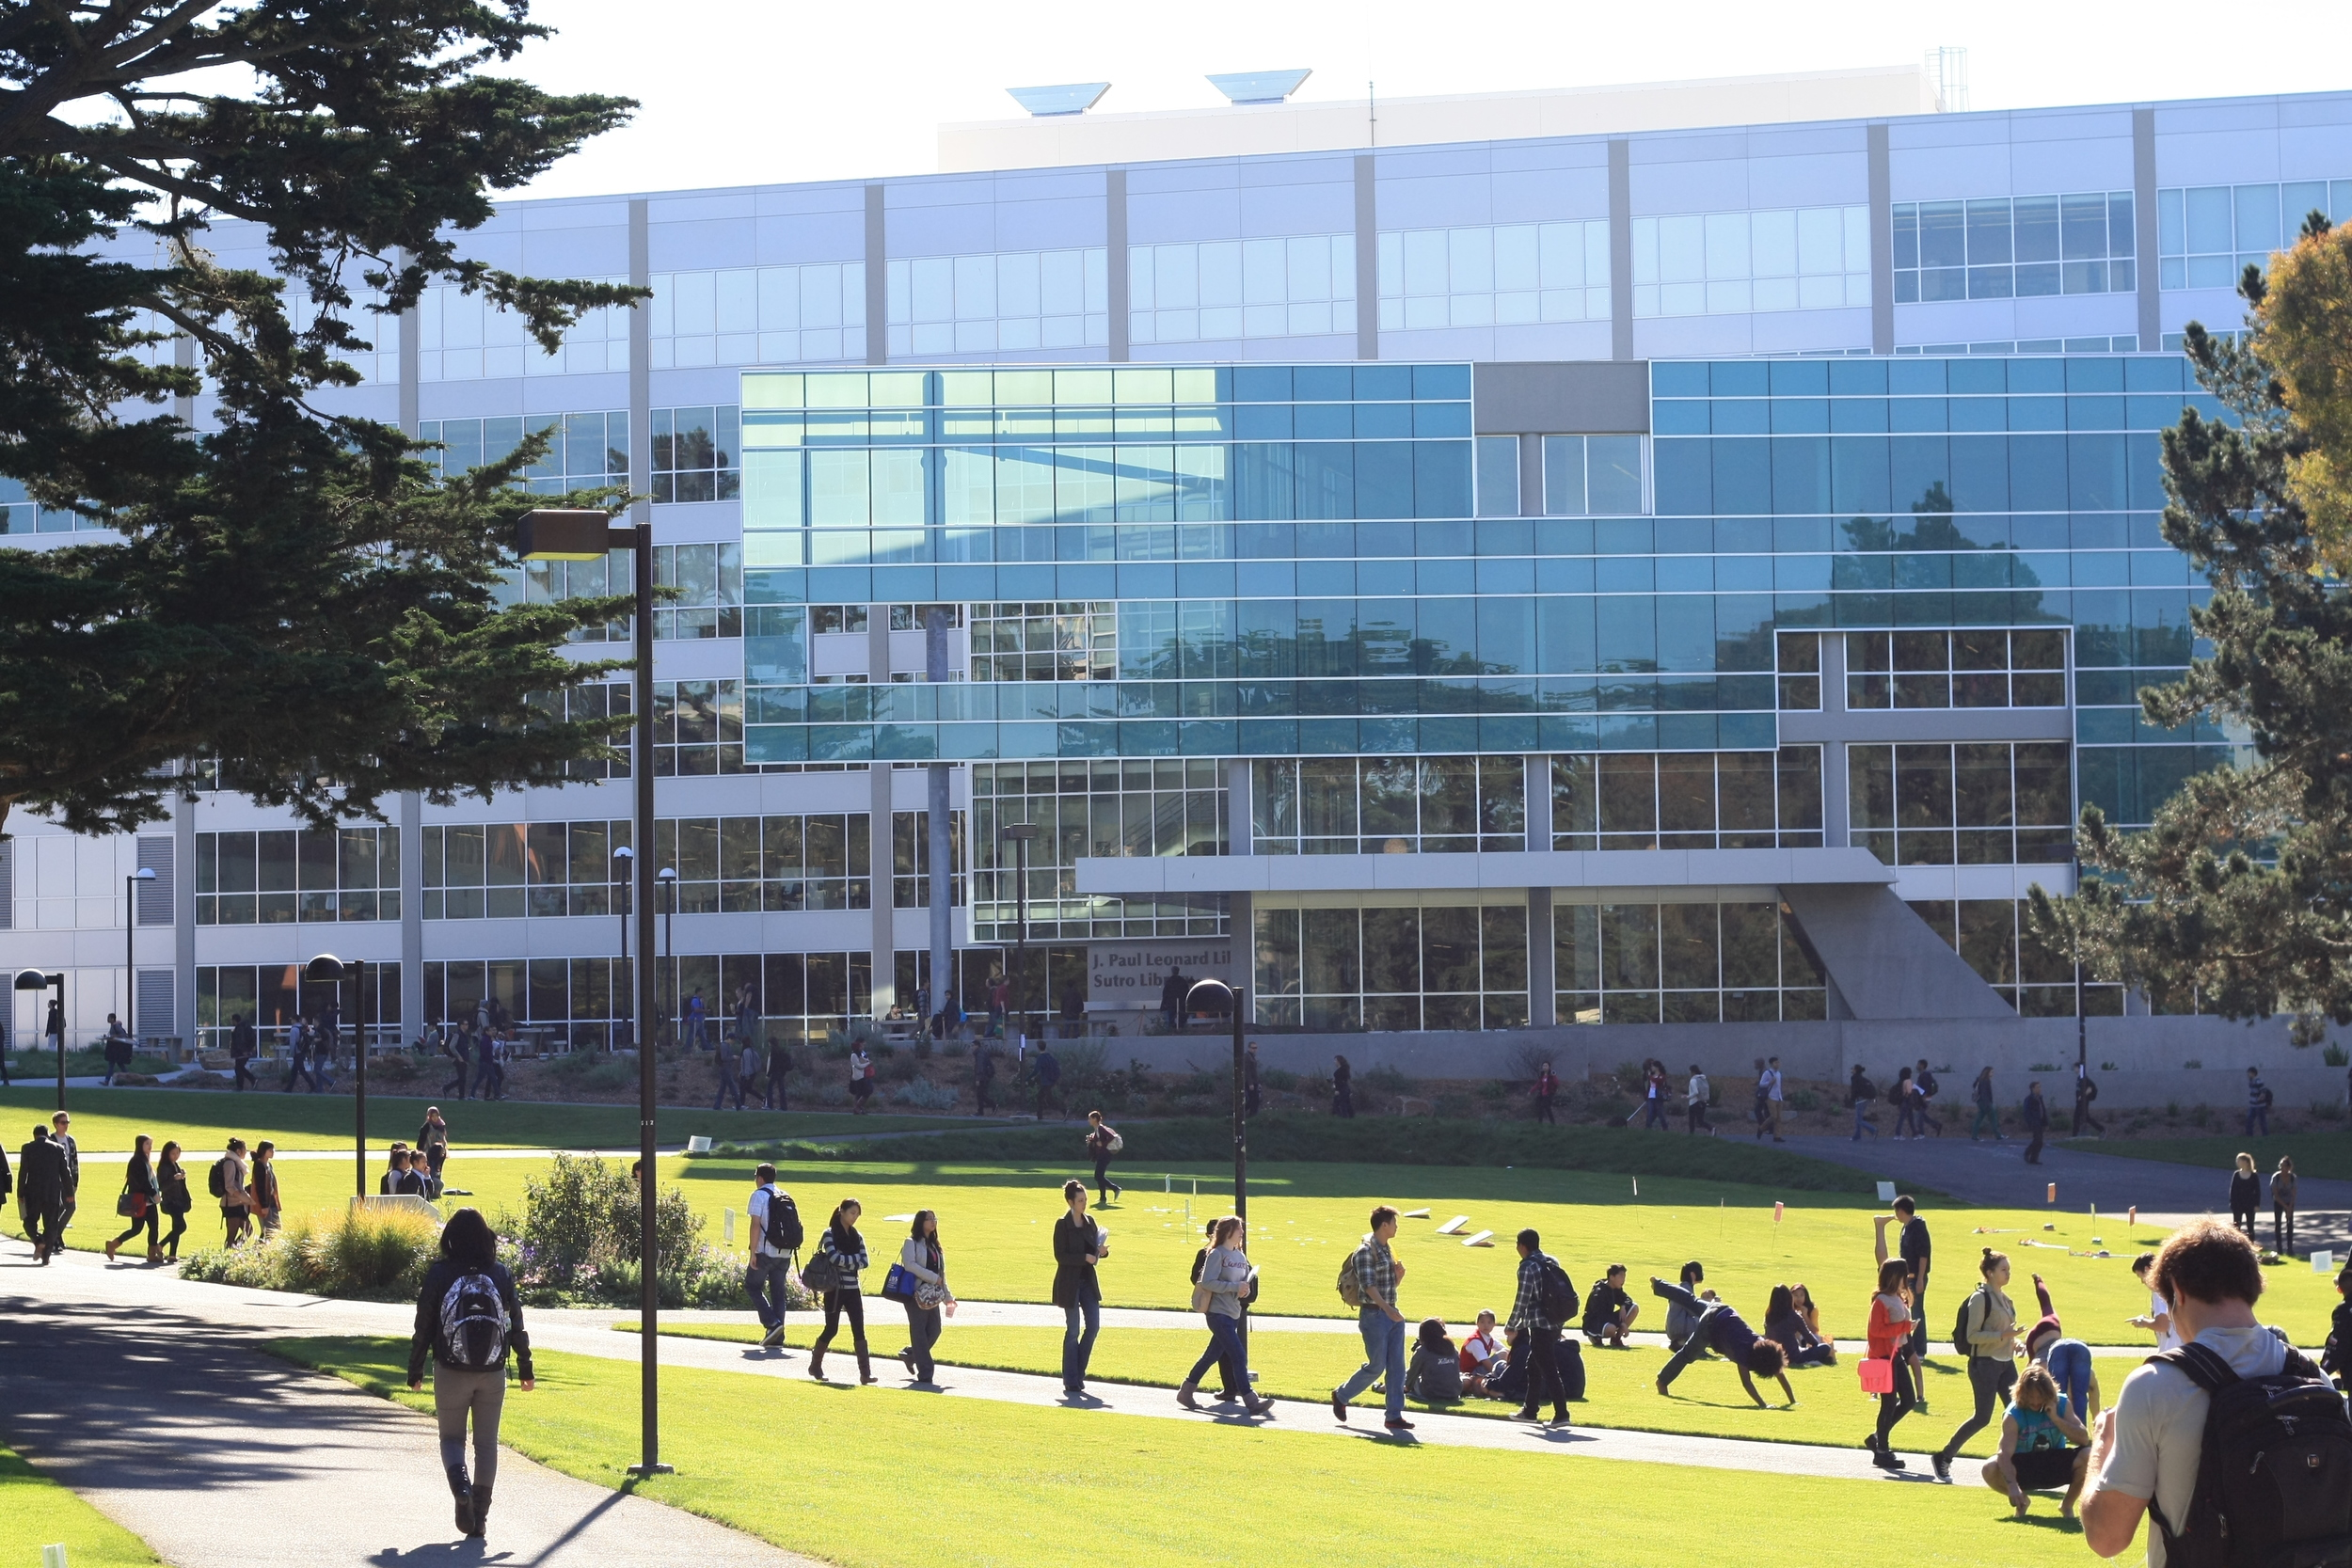 During the academic year, the blocks around San Francisco State University's campus are lively with students walking to and from classes.